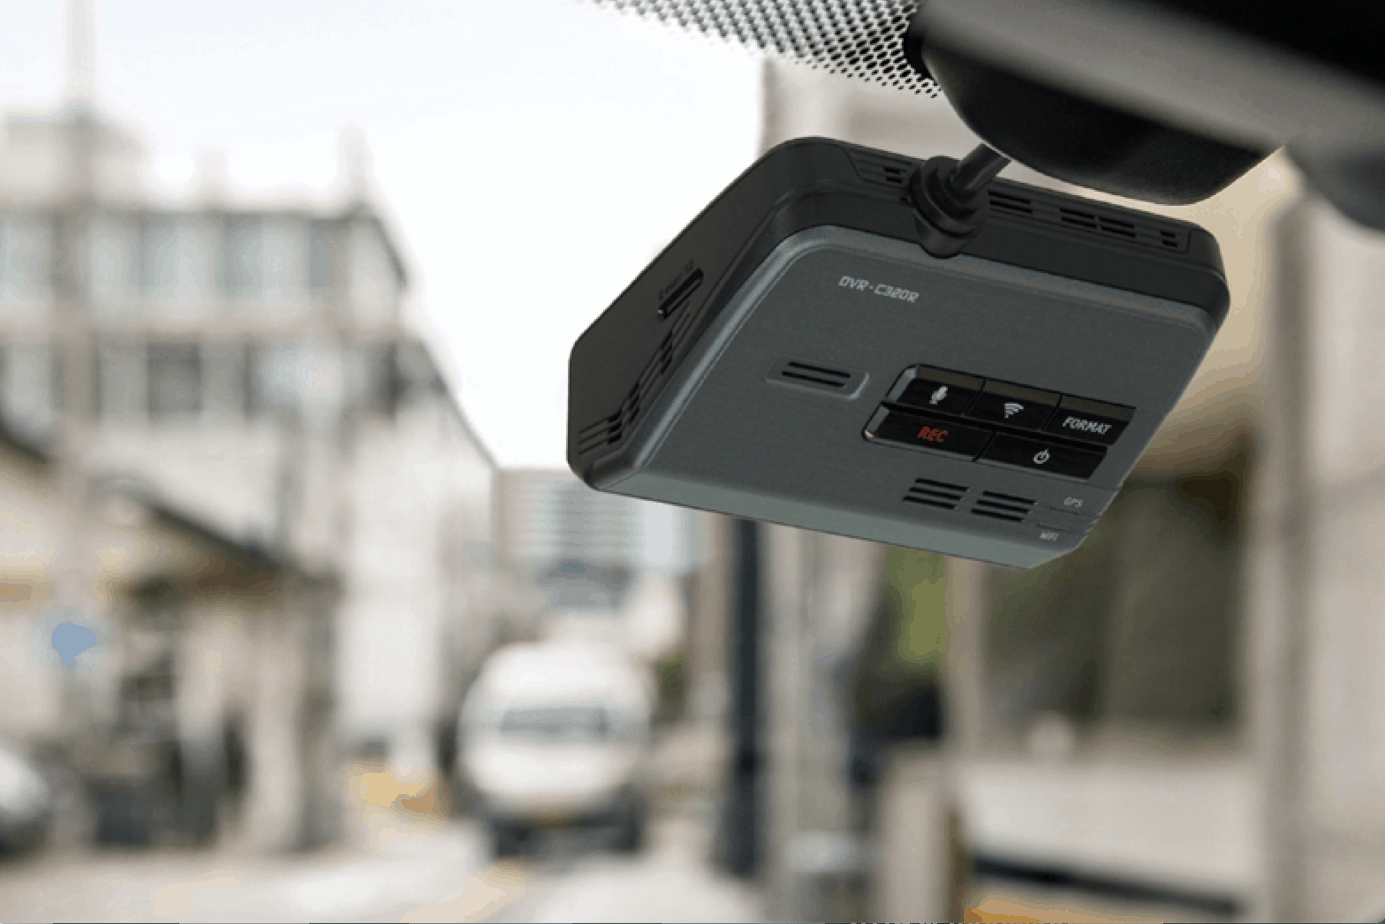 Alpine Dash Camera FEATURED DVR-C320R